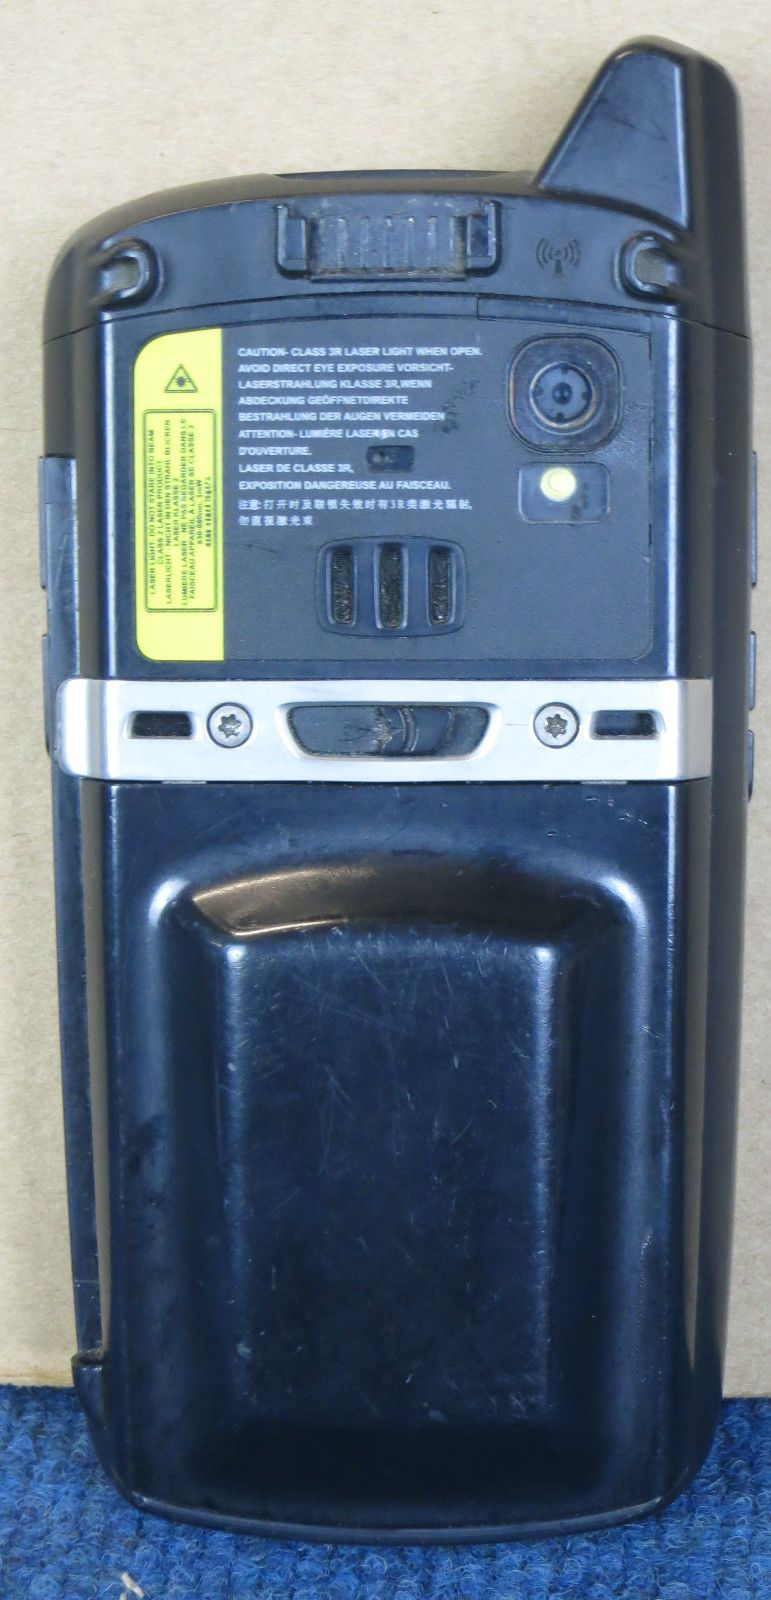 Symbol barcode scanner symbol barcode opc sharp tv symbol mc659b pd0baa00100 pda barcode scanner terminal missing button motorola symbol mc659b pd0baa00100 pda barcode scanner biocorpaavc